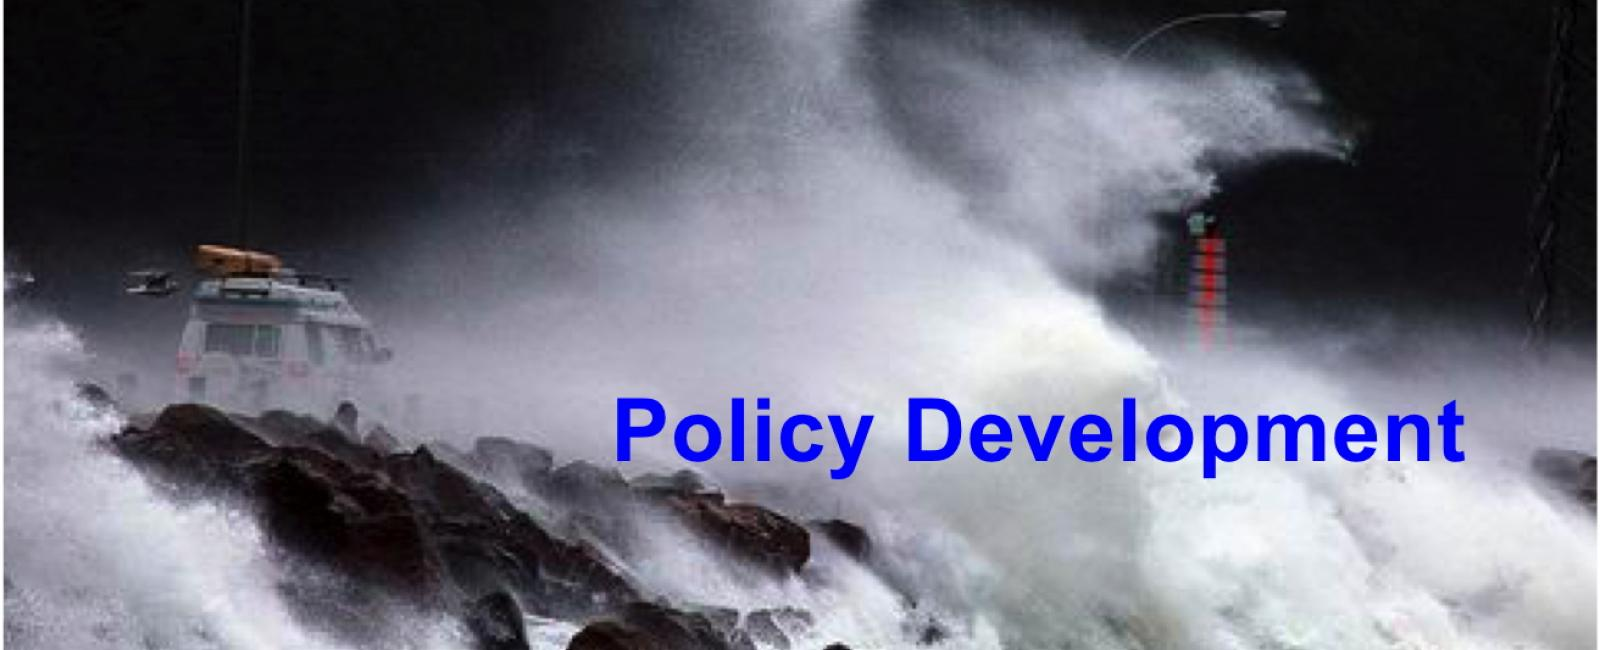 Policy Development - huge waves